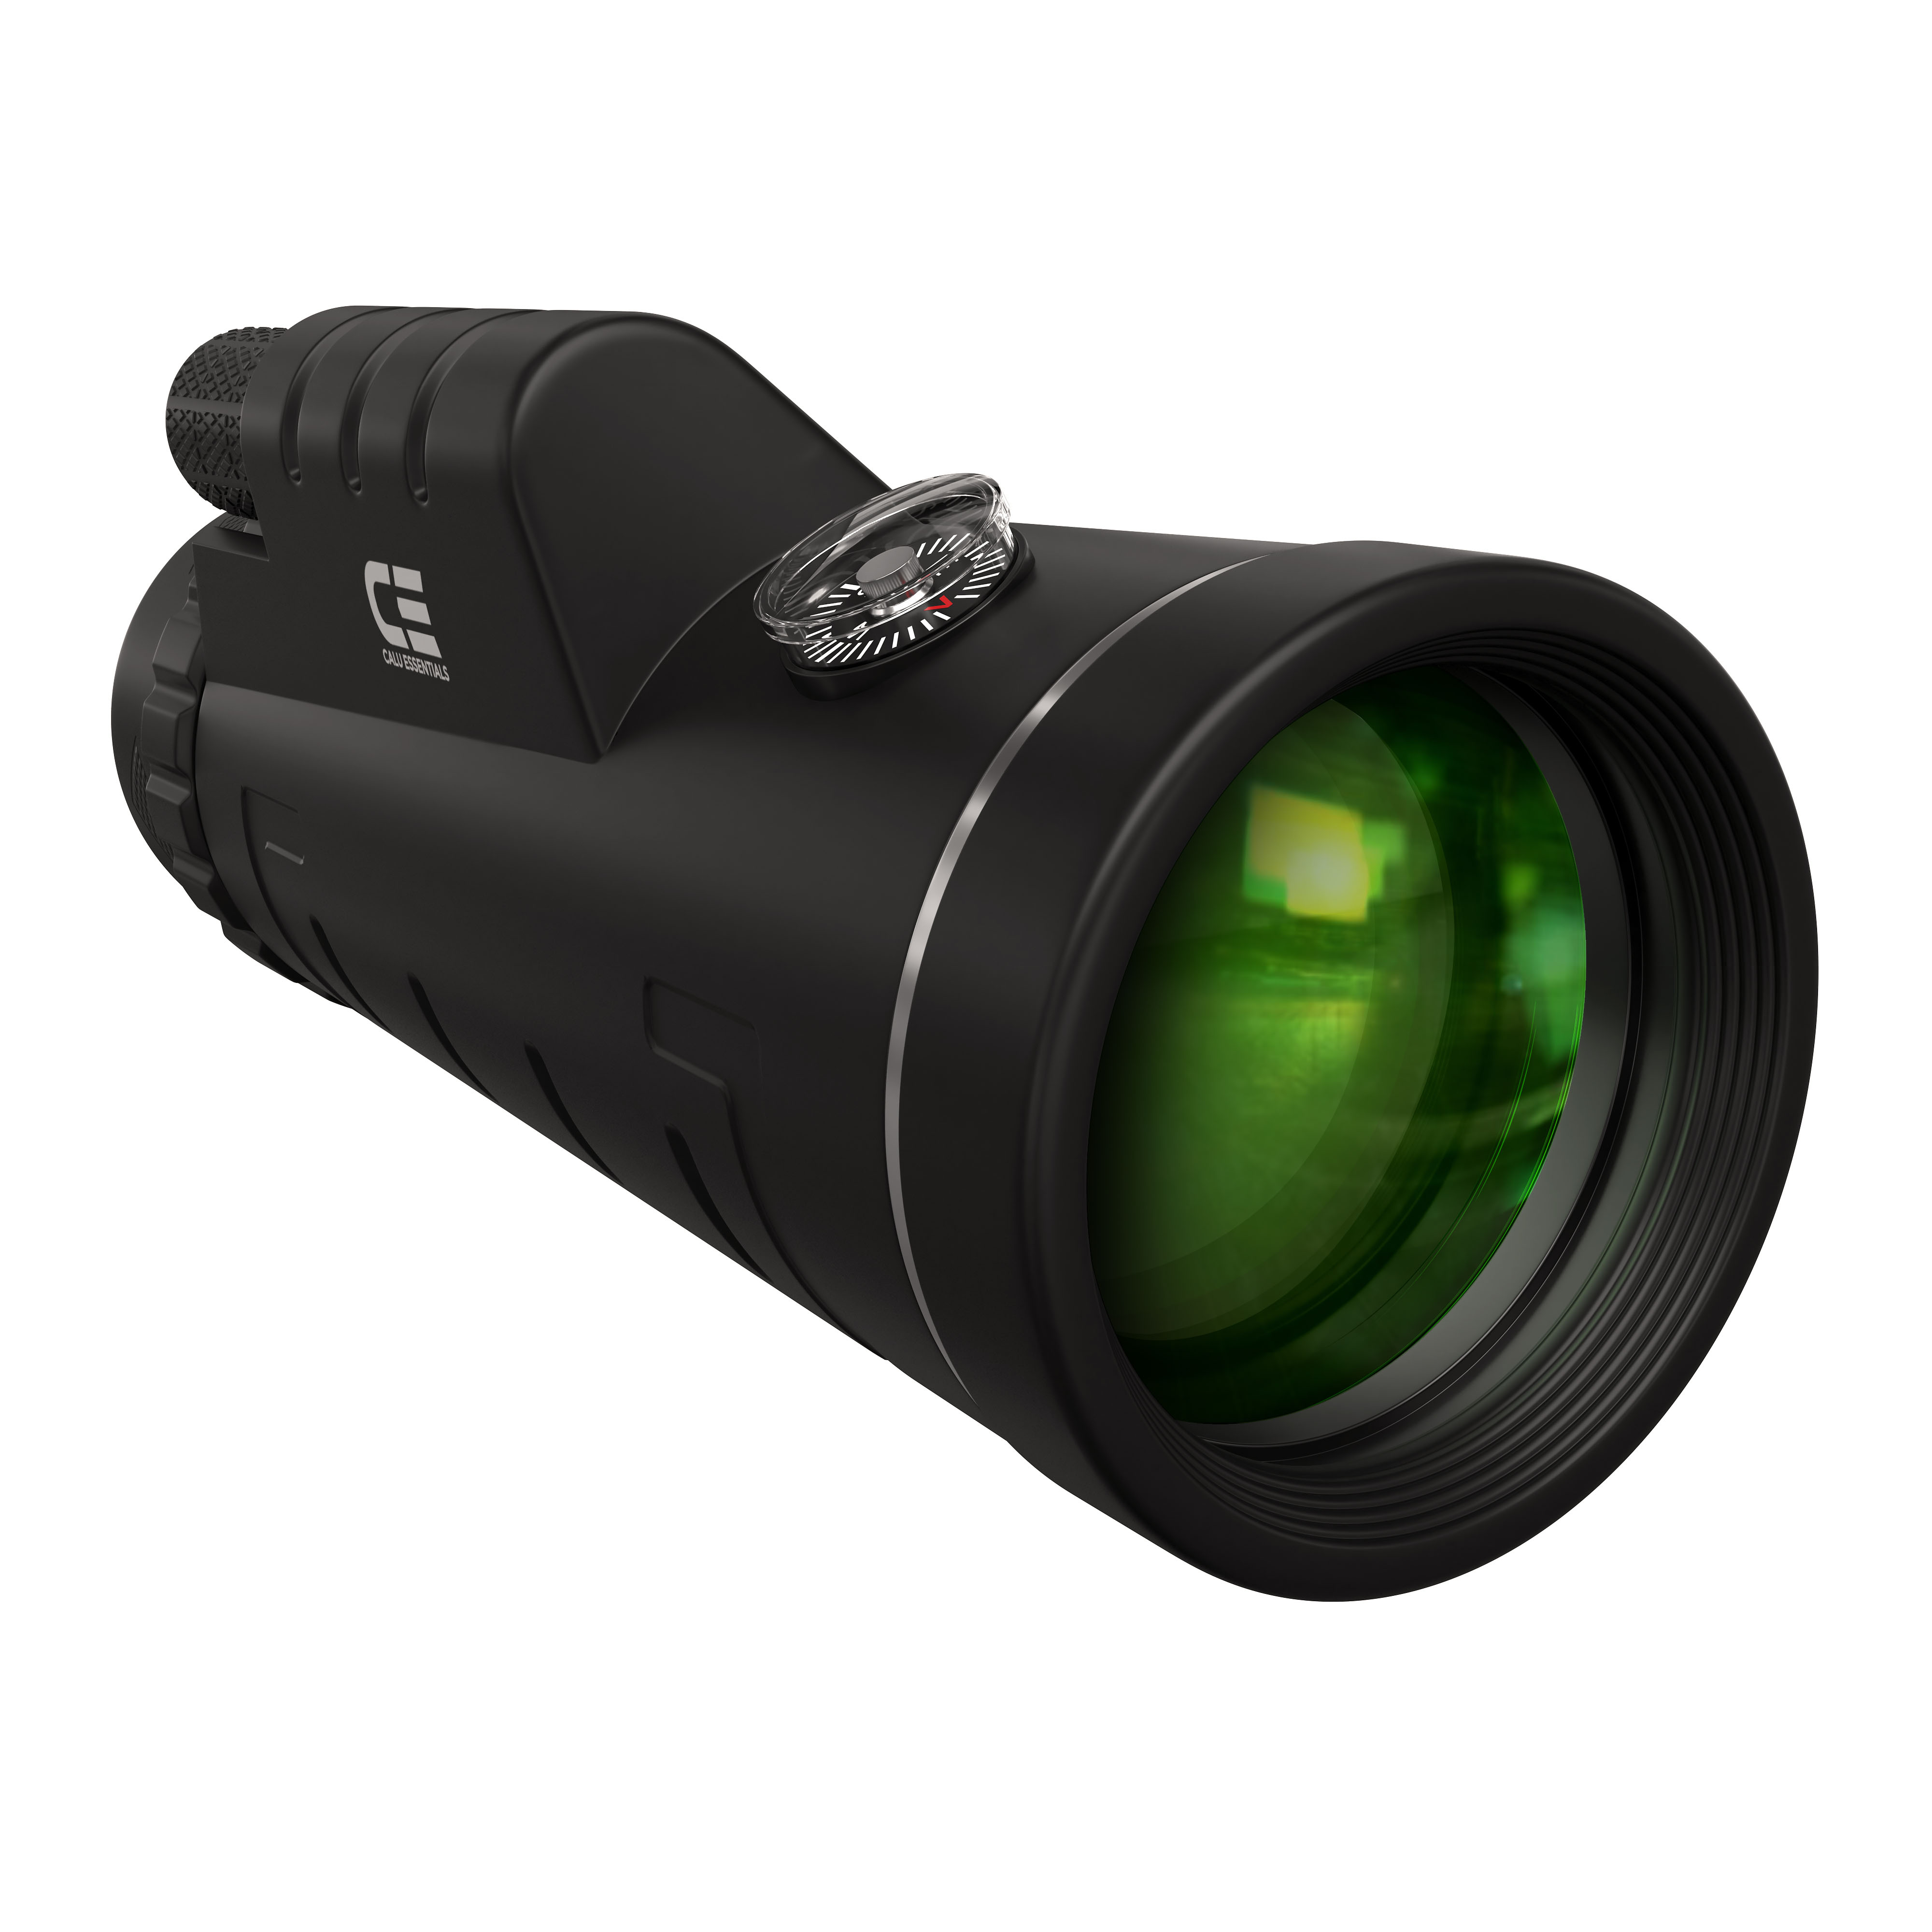 Monocular telescope with green lens and compass